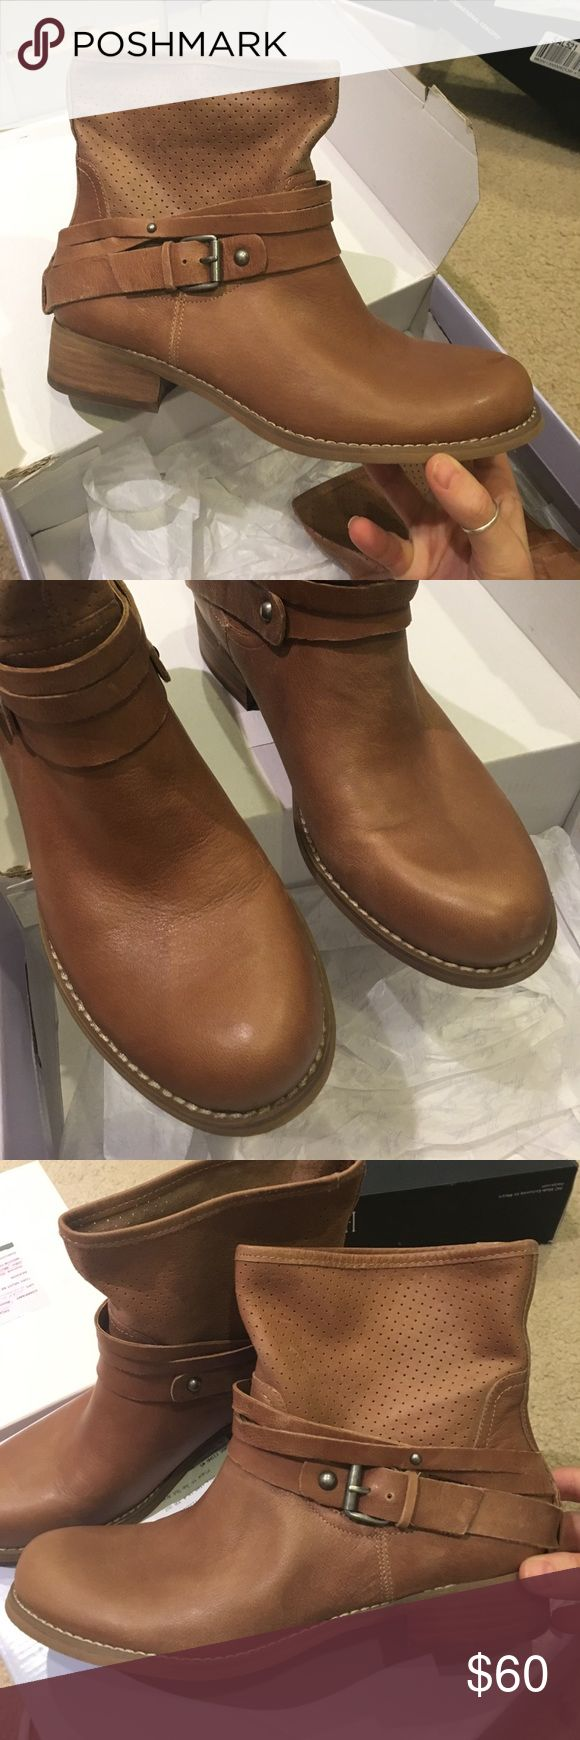 Marc fisher tan leather ankle boots new! Brand new Marc fisher tan leather ankle boots. Has a few very minor scuffs. Very small. Beautiful boots! Comes in original box Marc Fisher Shoes Ankle Boots & Booties